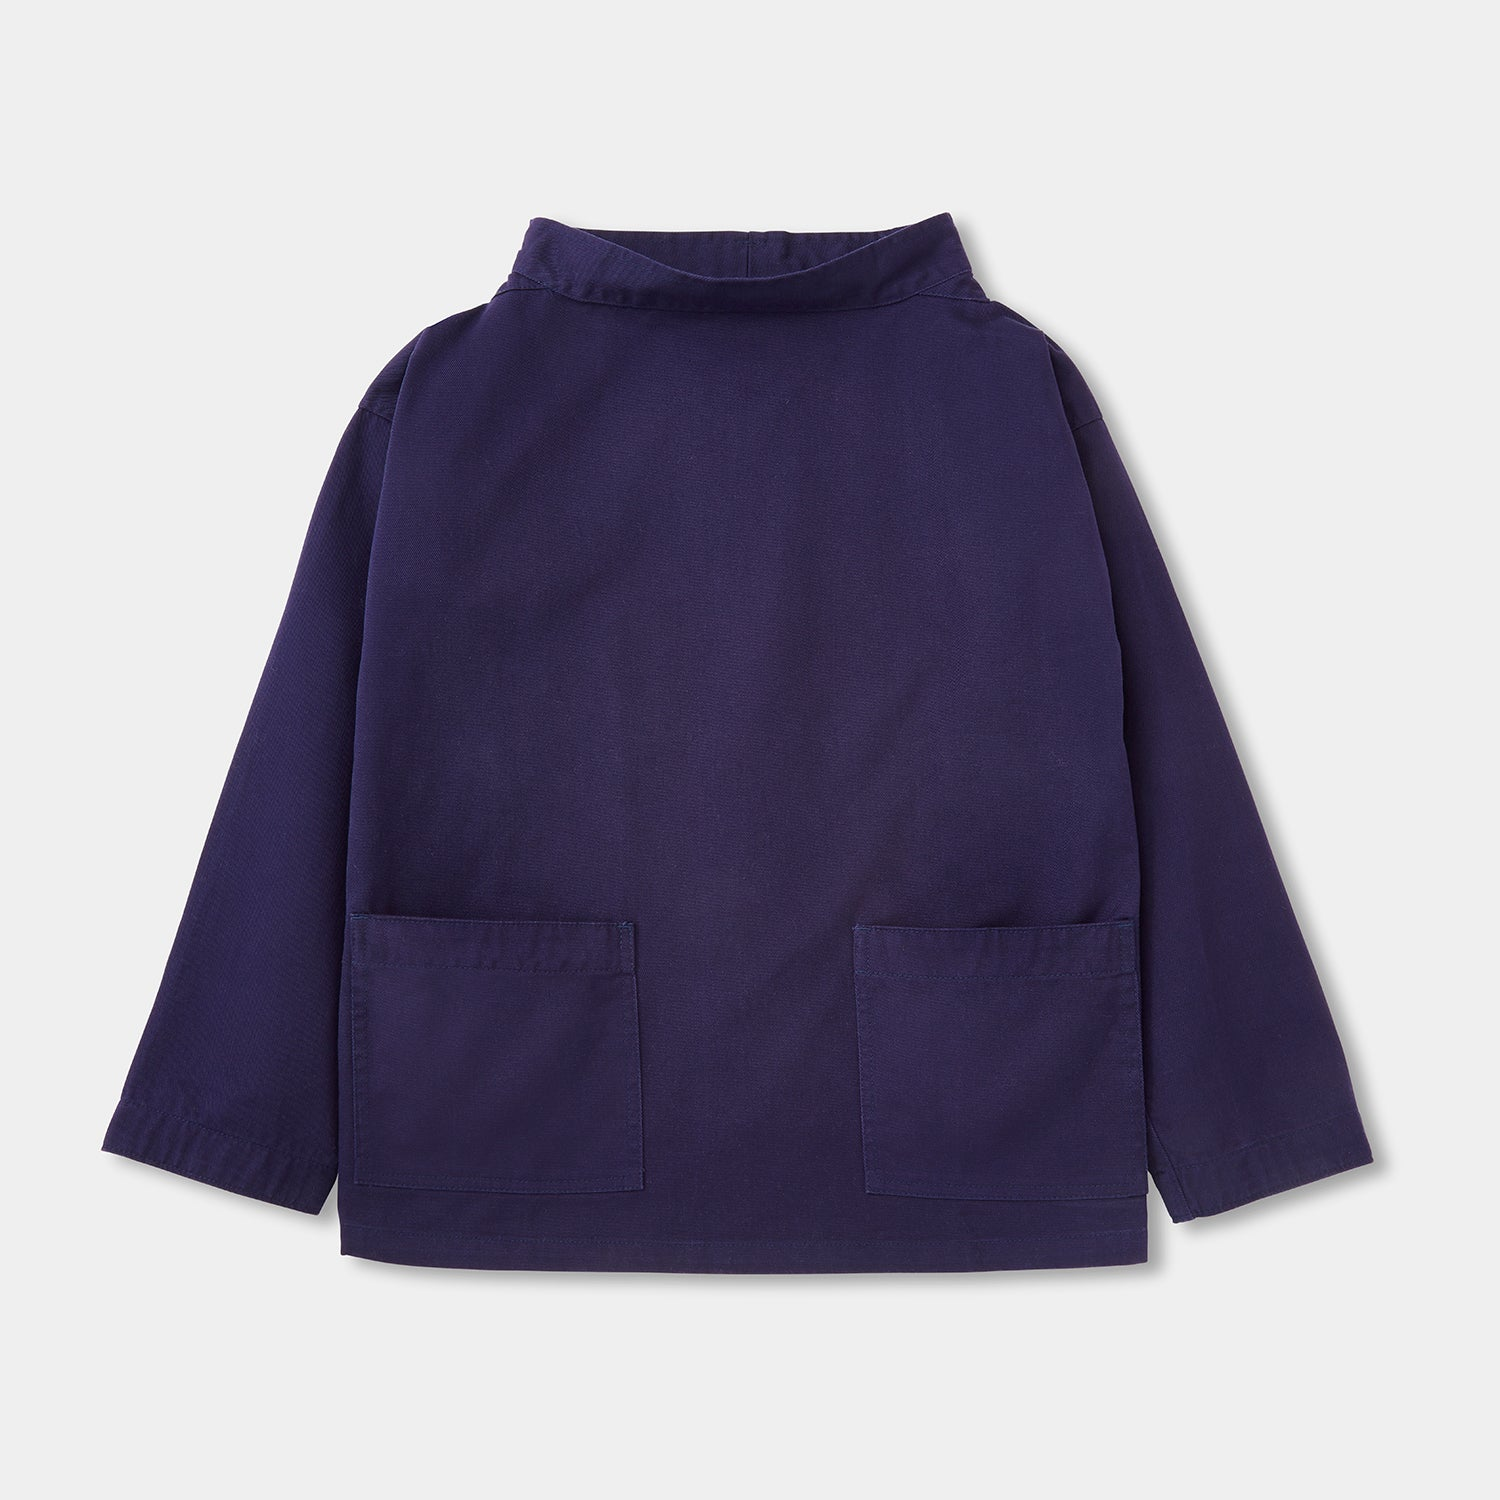 The Classic Smock for gardeners